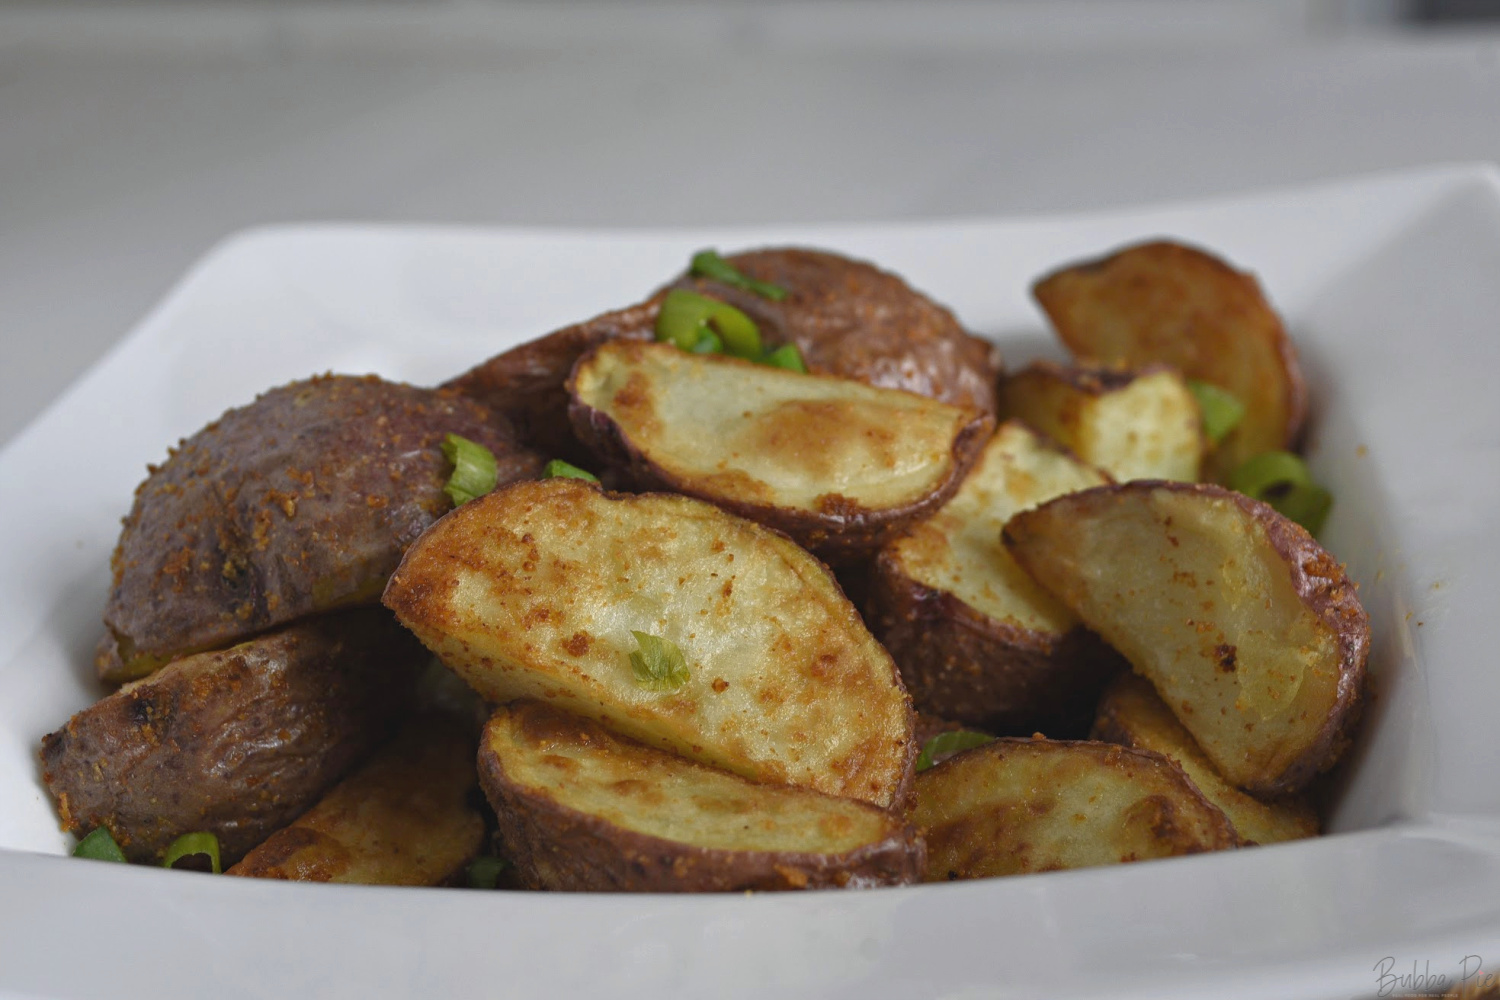 Air Fried Potato Wedges being served for dinner.